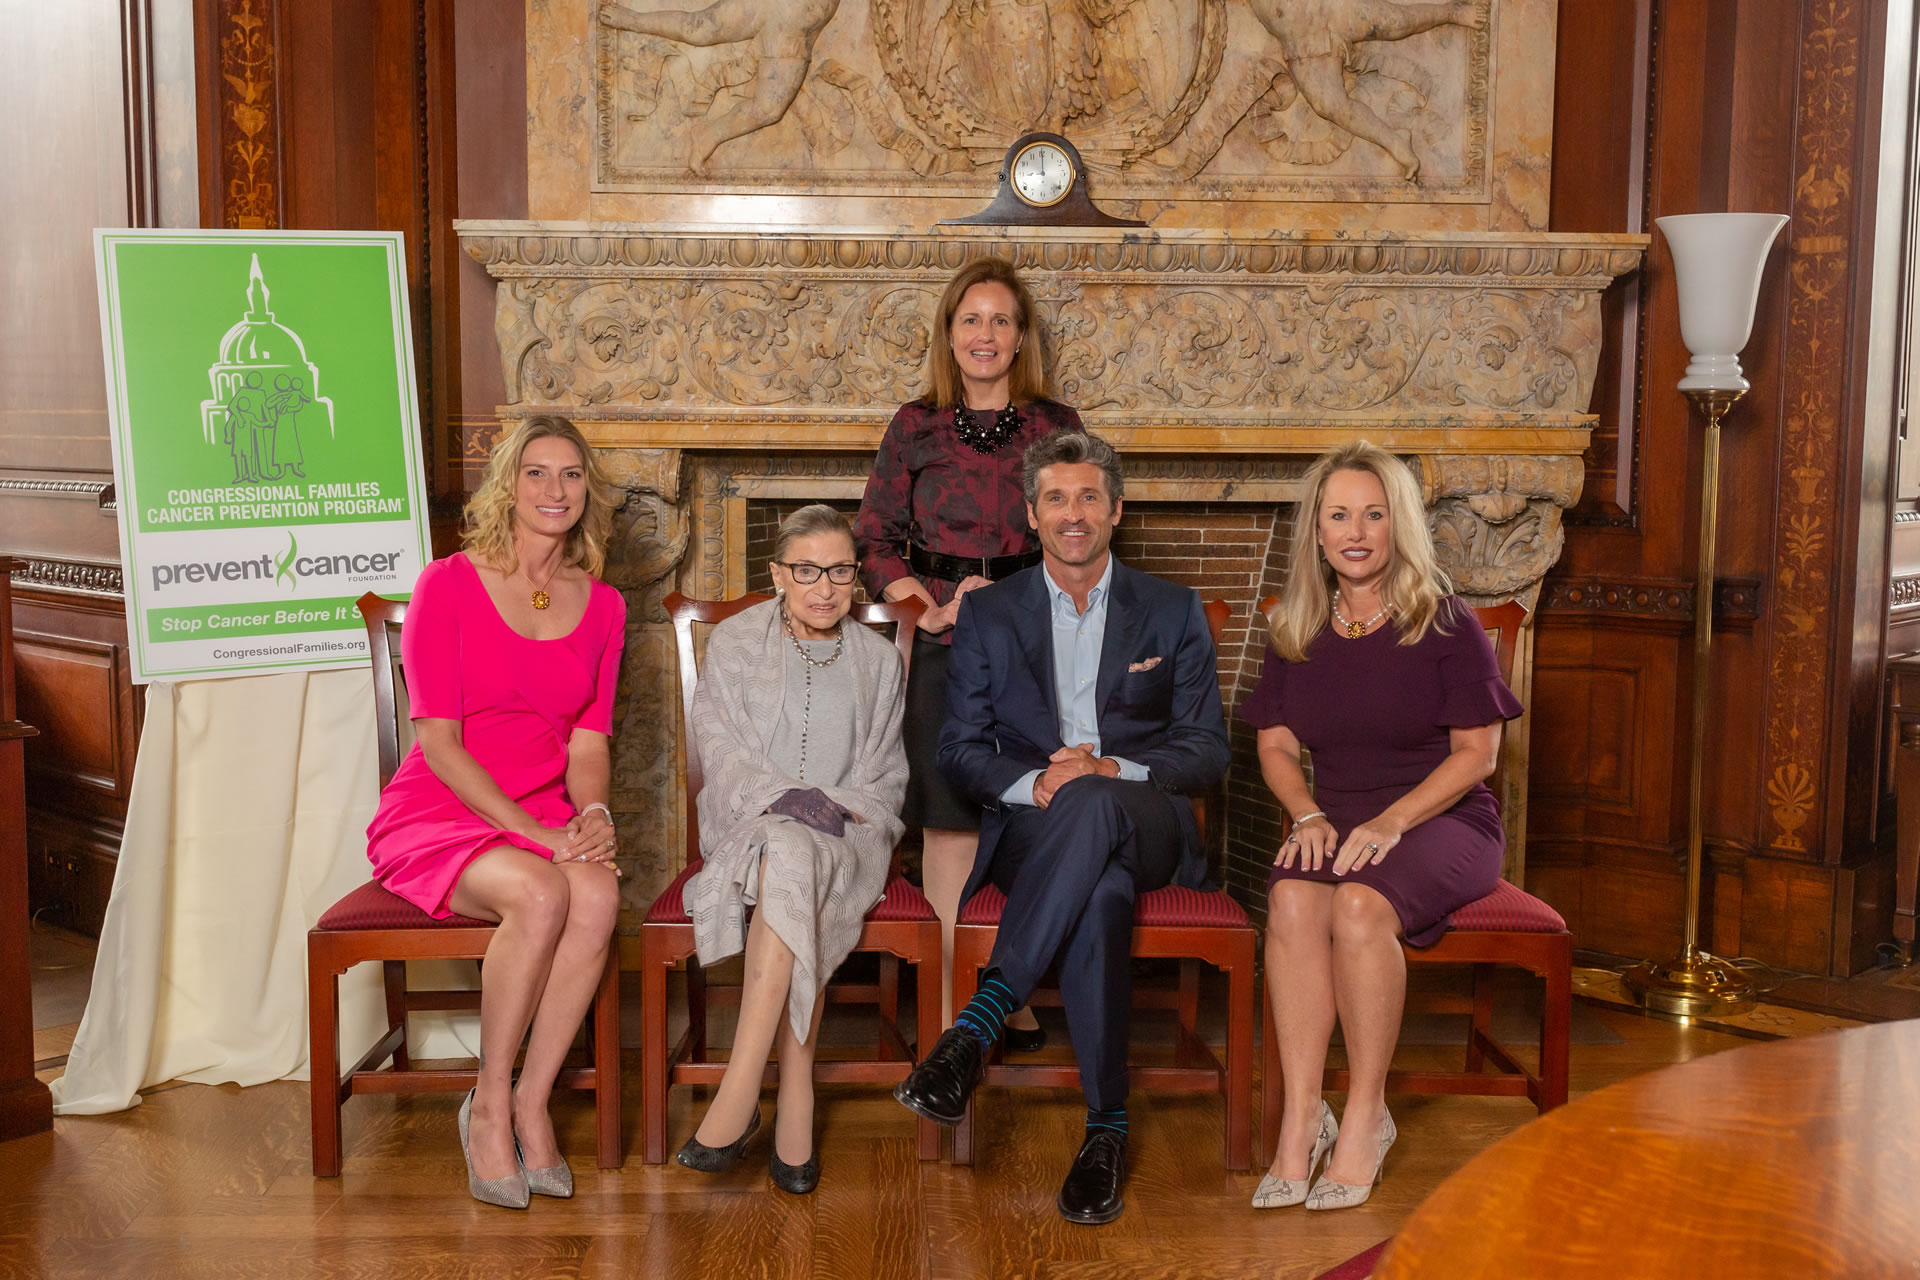 L-R: Honoree Amanda Soto, U.S. Supreme Court Justice Ruth Bader Ginsburg, Congressional Families Director Lisa McGovern, Patrick Dempsey, and honoree LeeAnn Johnson.